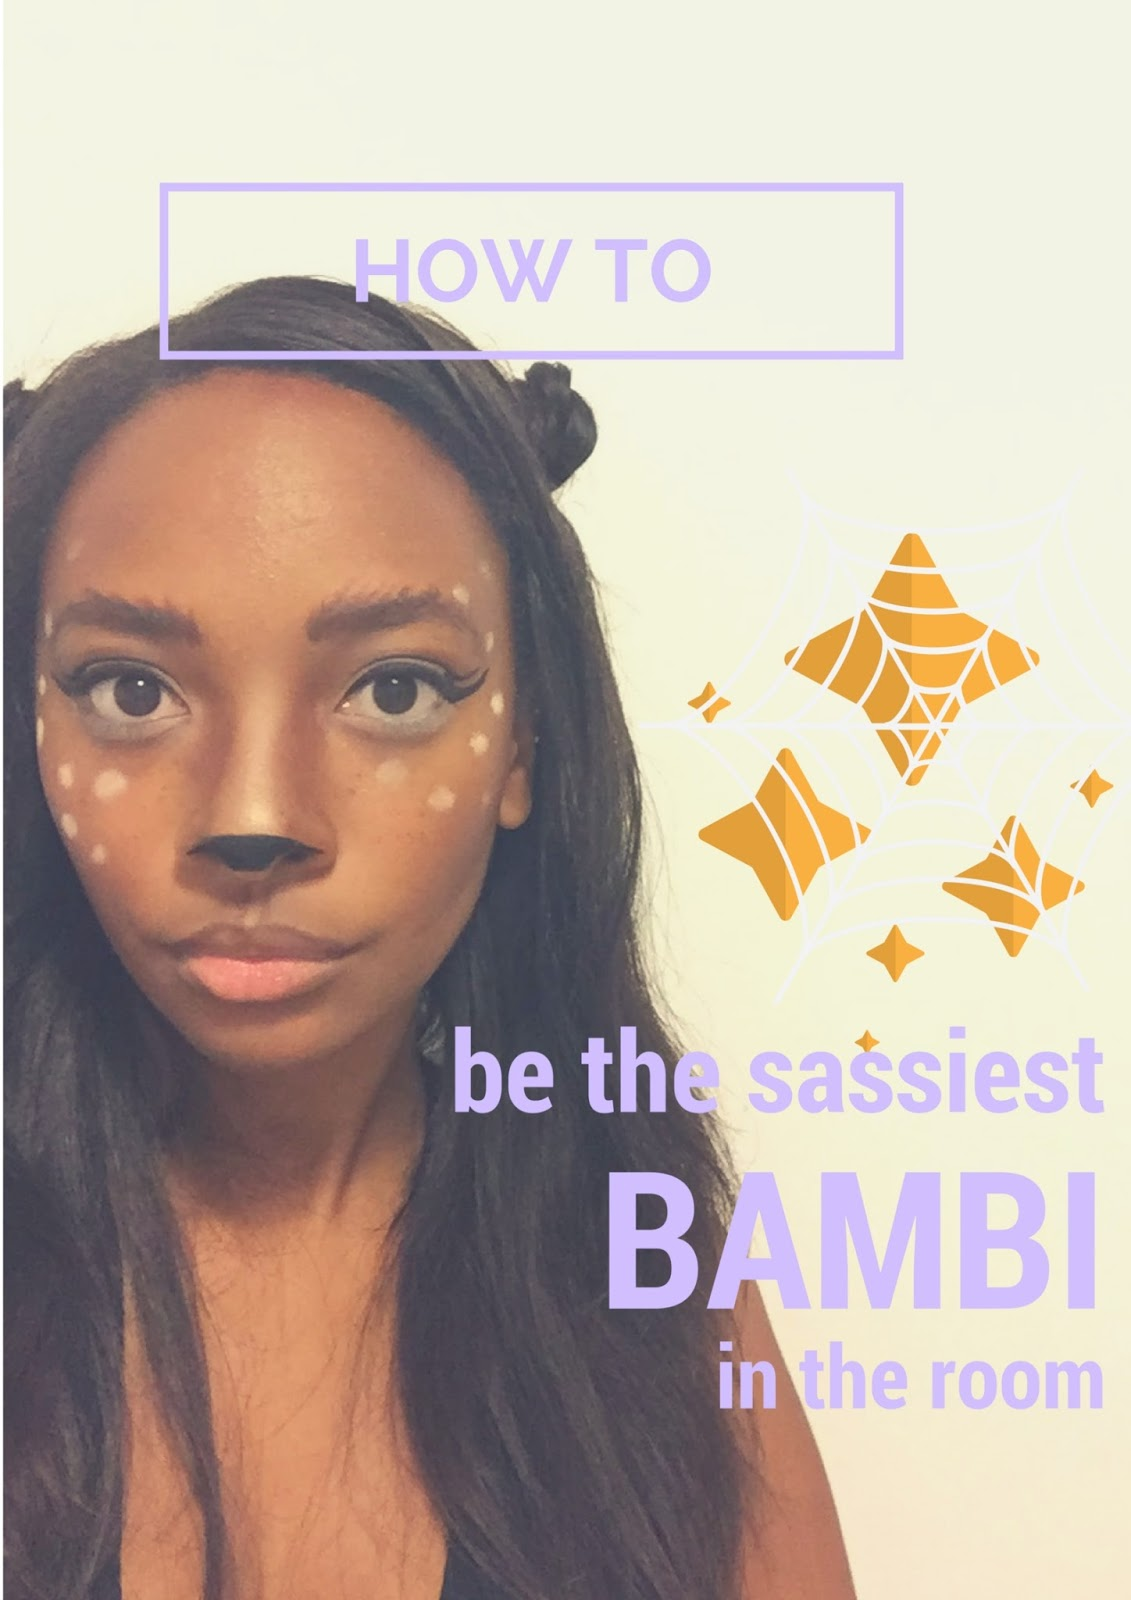 HOW TO BE CUTER THAN BAMBI: Make-Up Tutorial